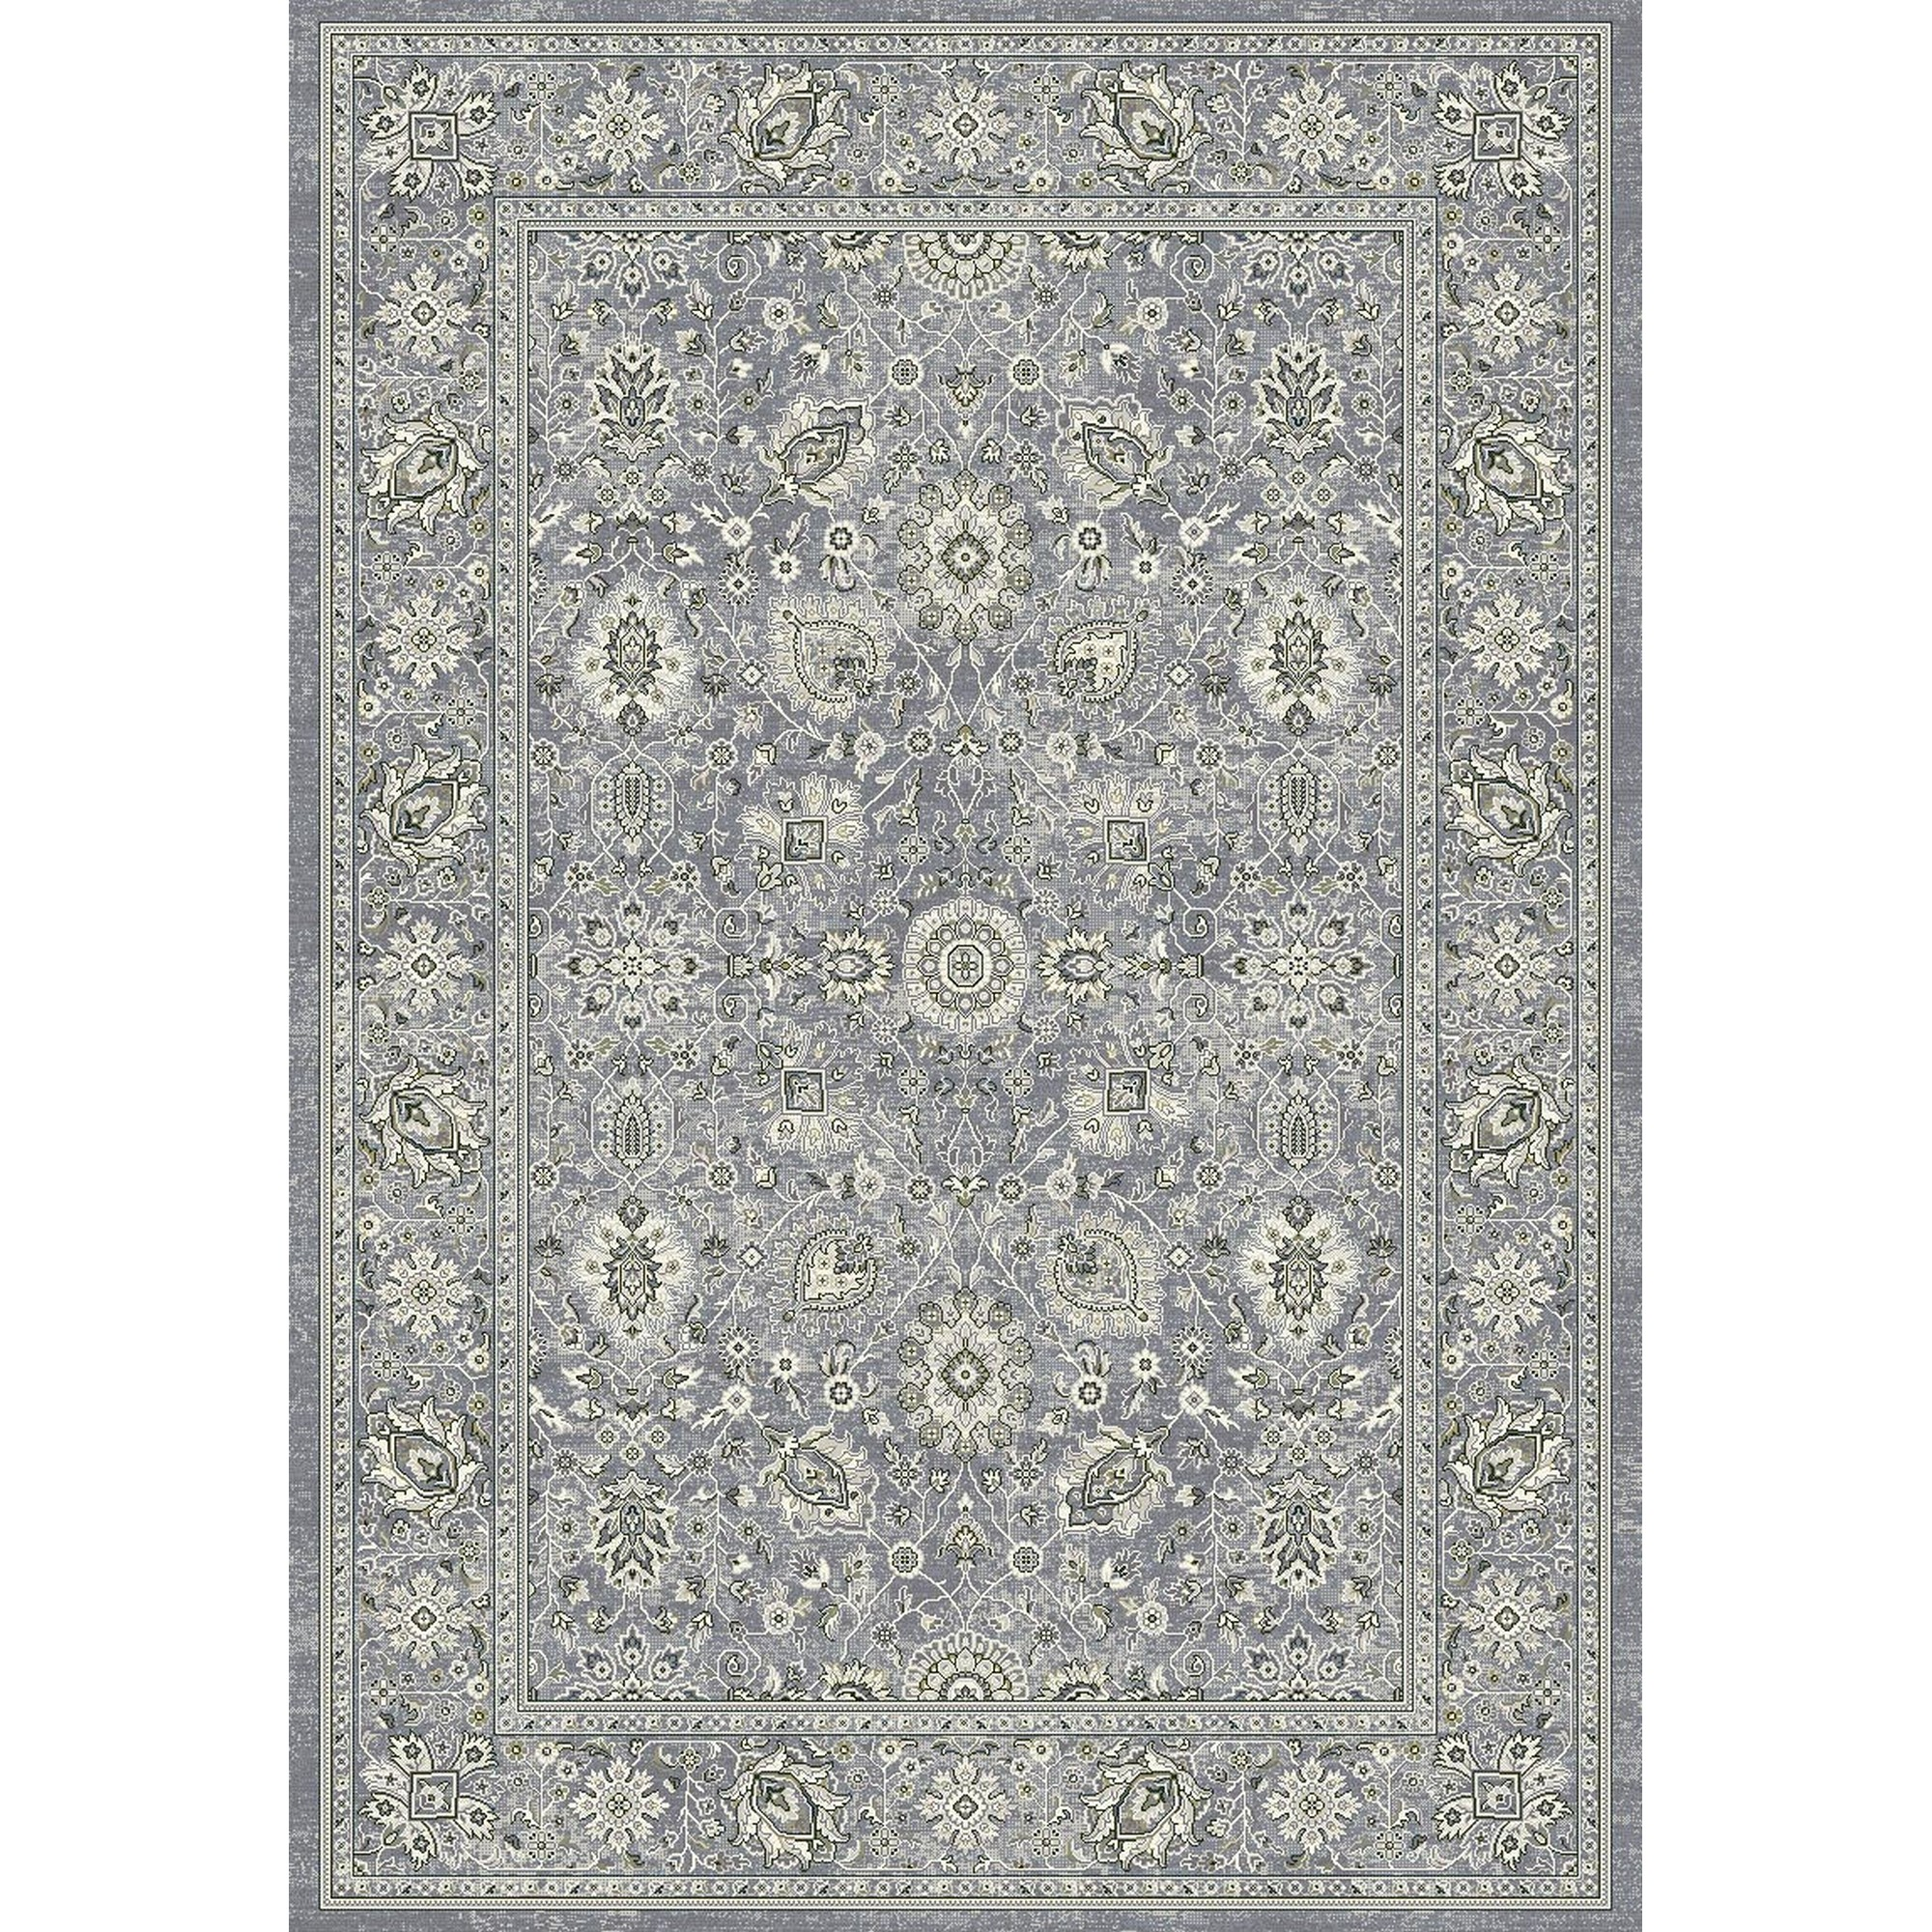 Da Vinci Rugs 57125 4646 in Blue